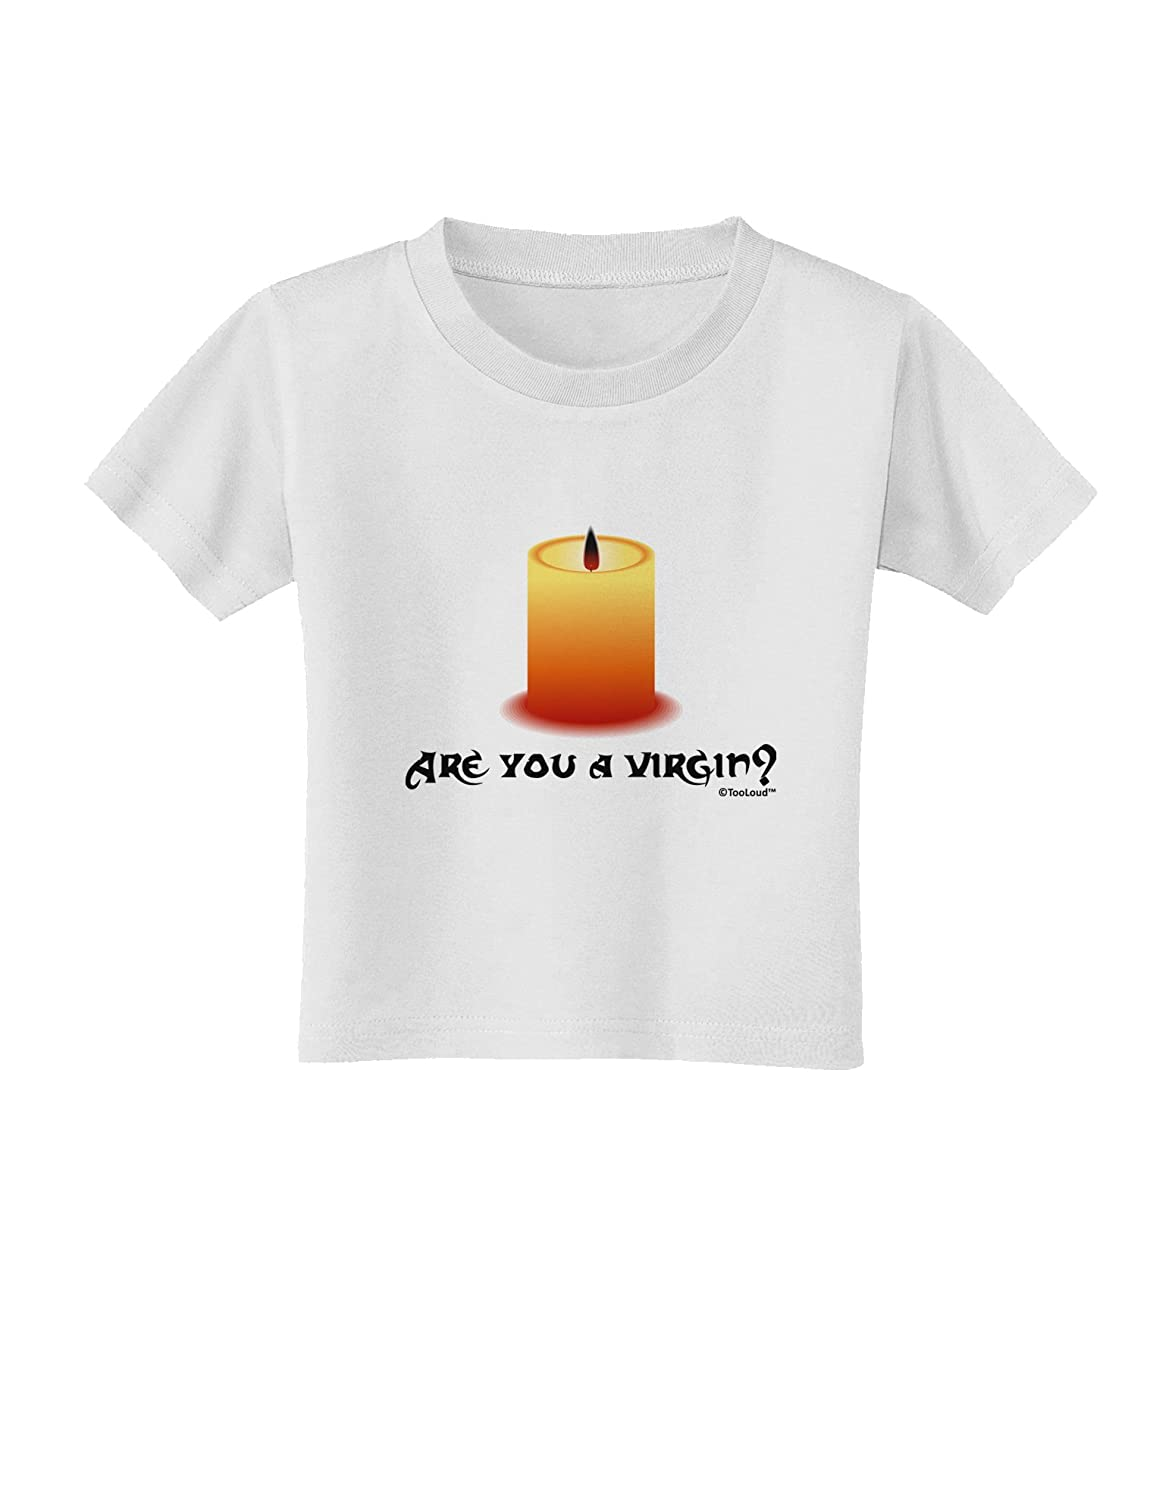 Black Flame Candle Toddler T-Shirt TooLoud are You A Virgin